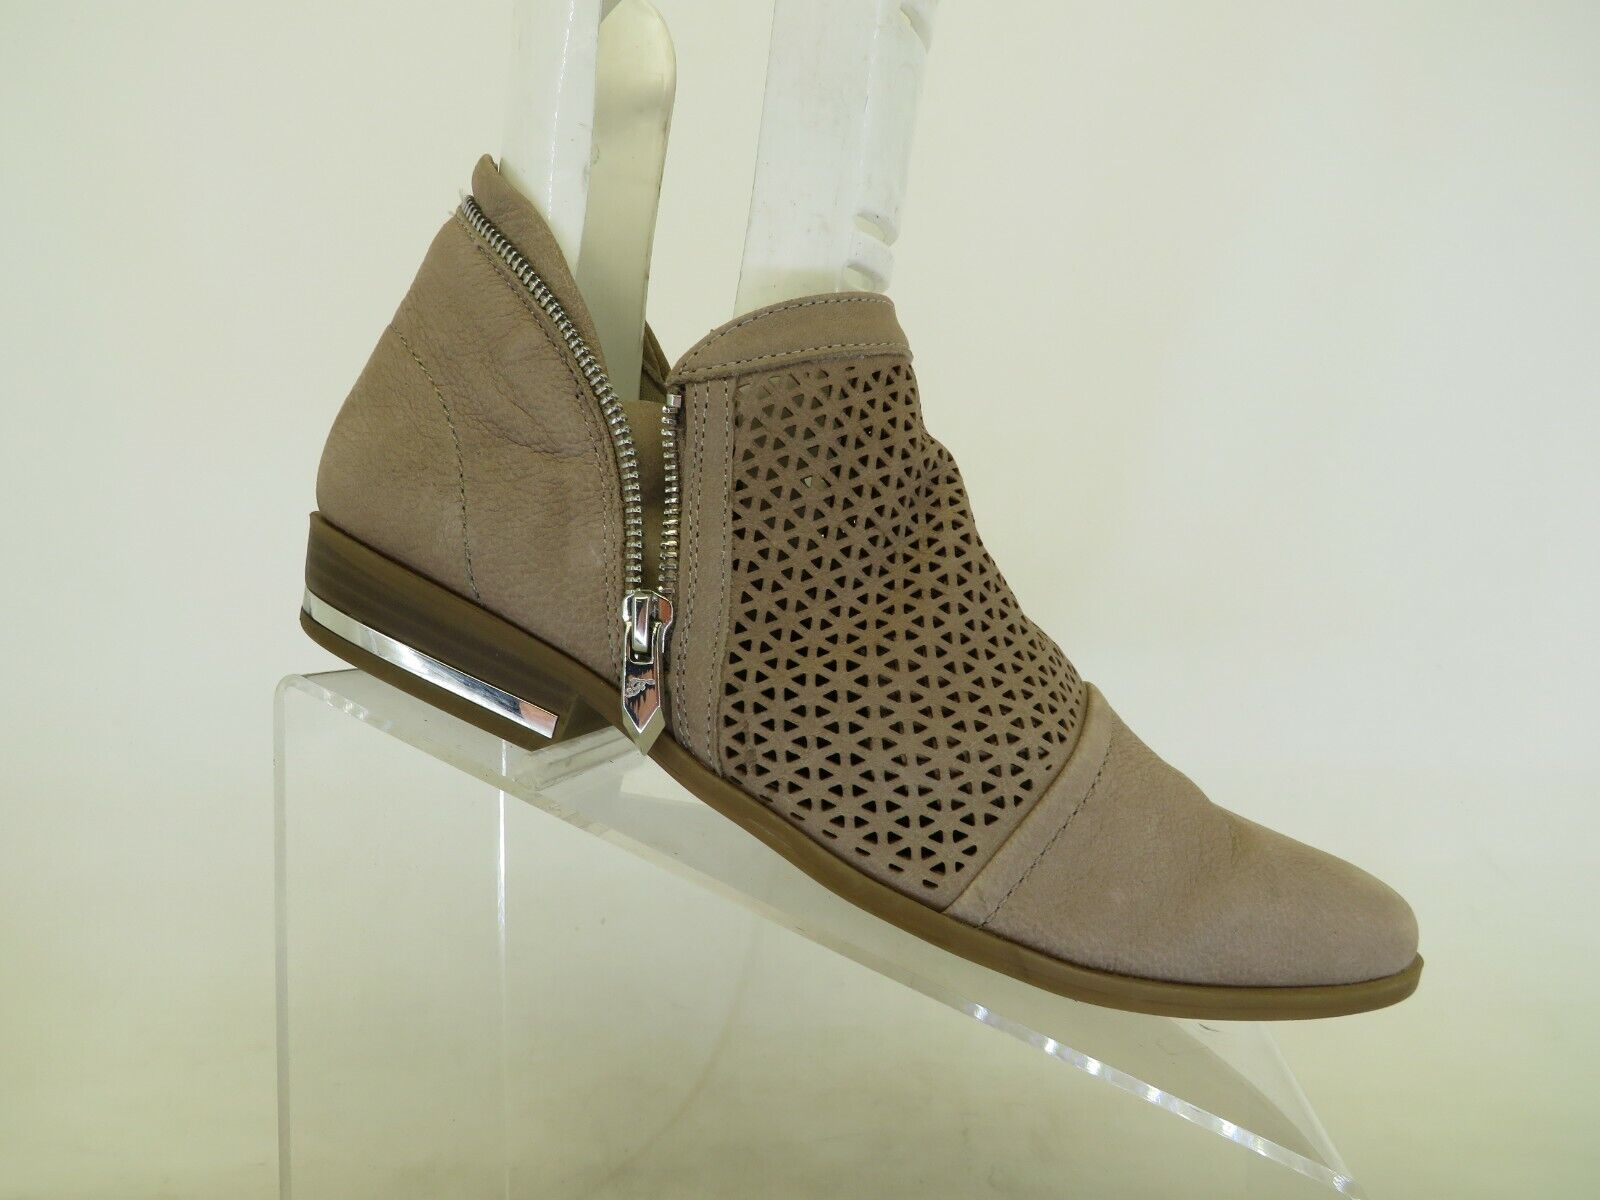 Fergie Brown Leather Zip Perforated Ankle Fashion Boots Bootie Size 10 M